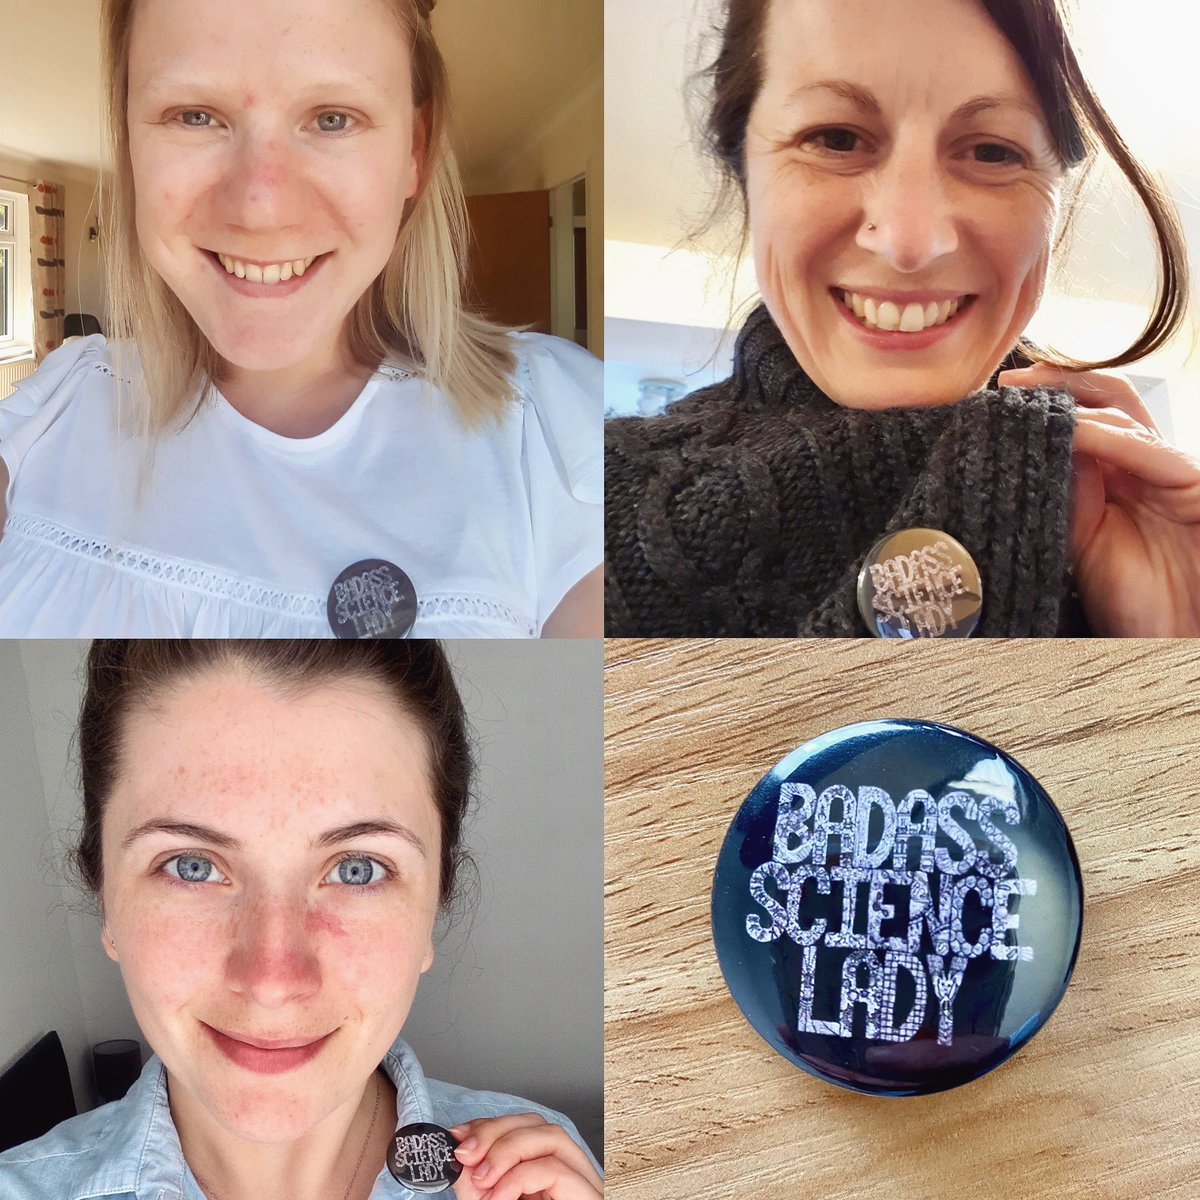 The current PhD 'Badass Science Ladies' of the Steed Group 👩🏻🔬 Badges available here: etsy.me/3dll5iQ